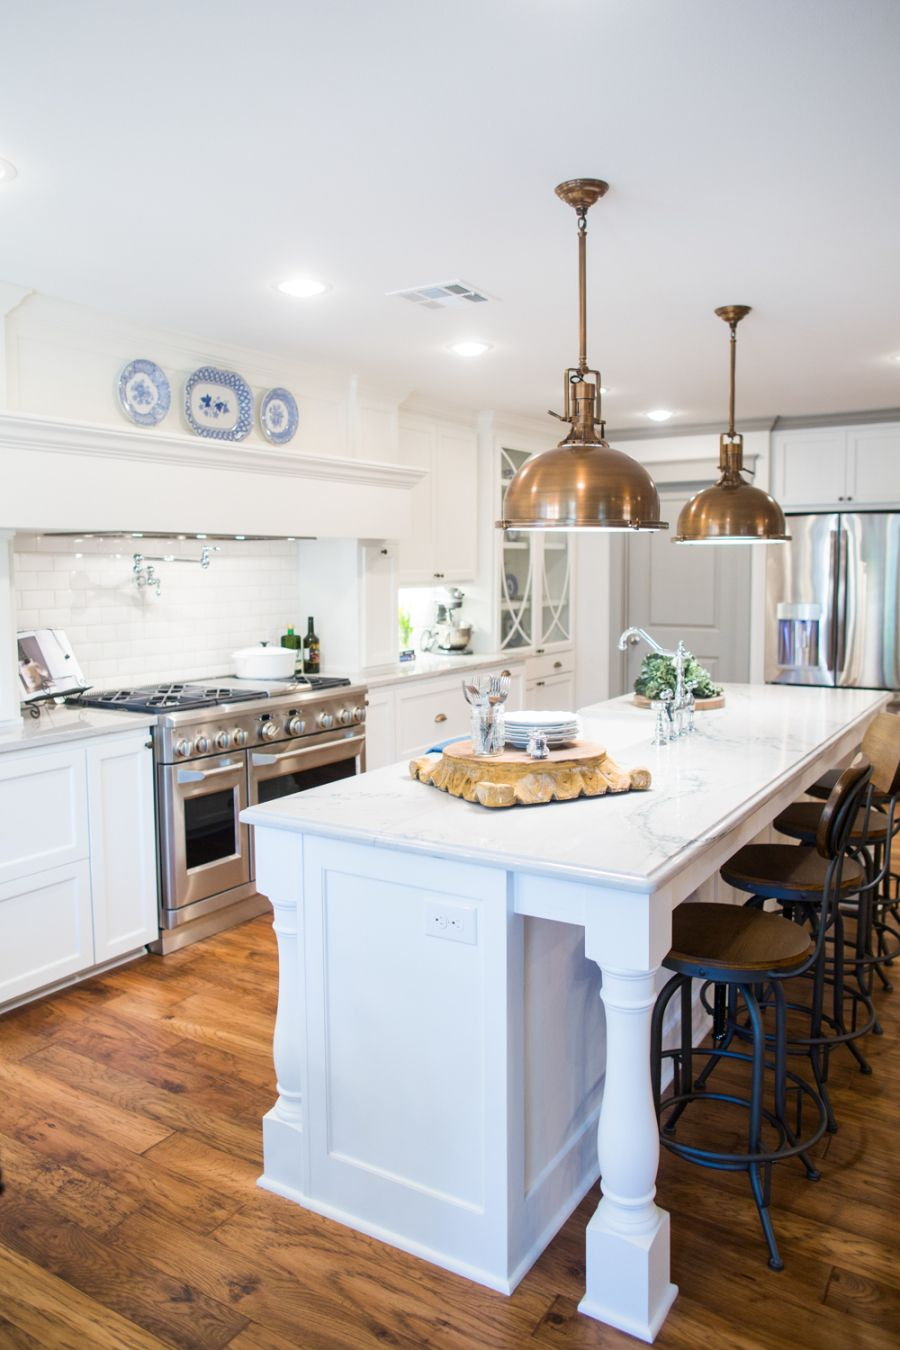 Custom Kitchen Islands Pictures Ideas Tips From Hgtv: Our Favorite HGTV Fixer Upper Interior Design Moments